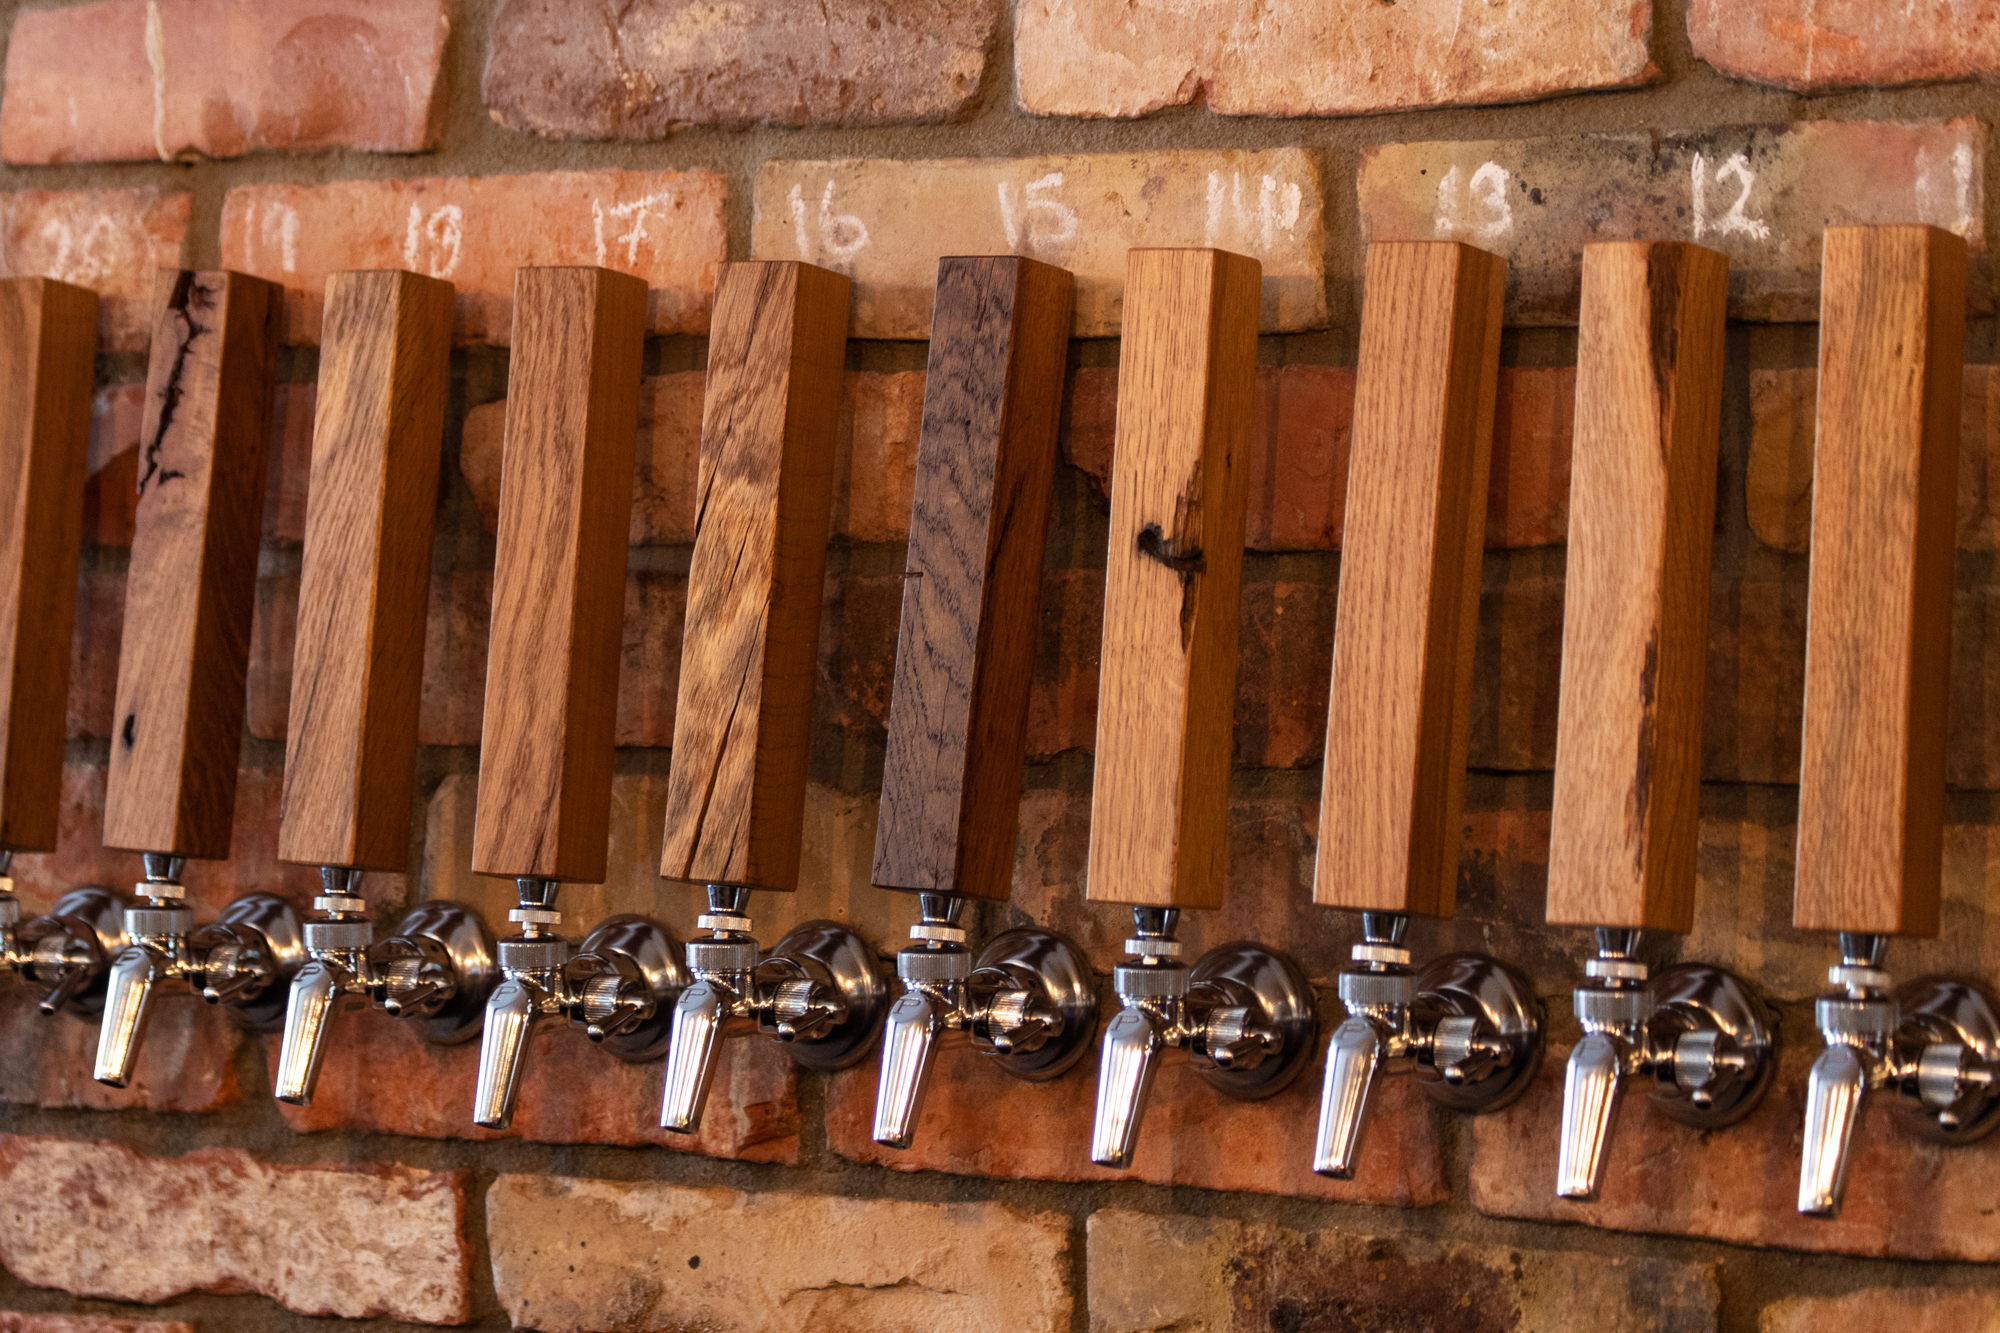 Wooden taps at Muted Horn, a craft beer bar in Berlin Neukölln